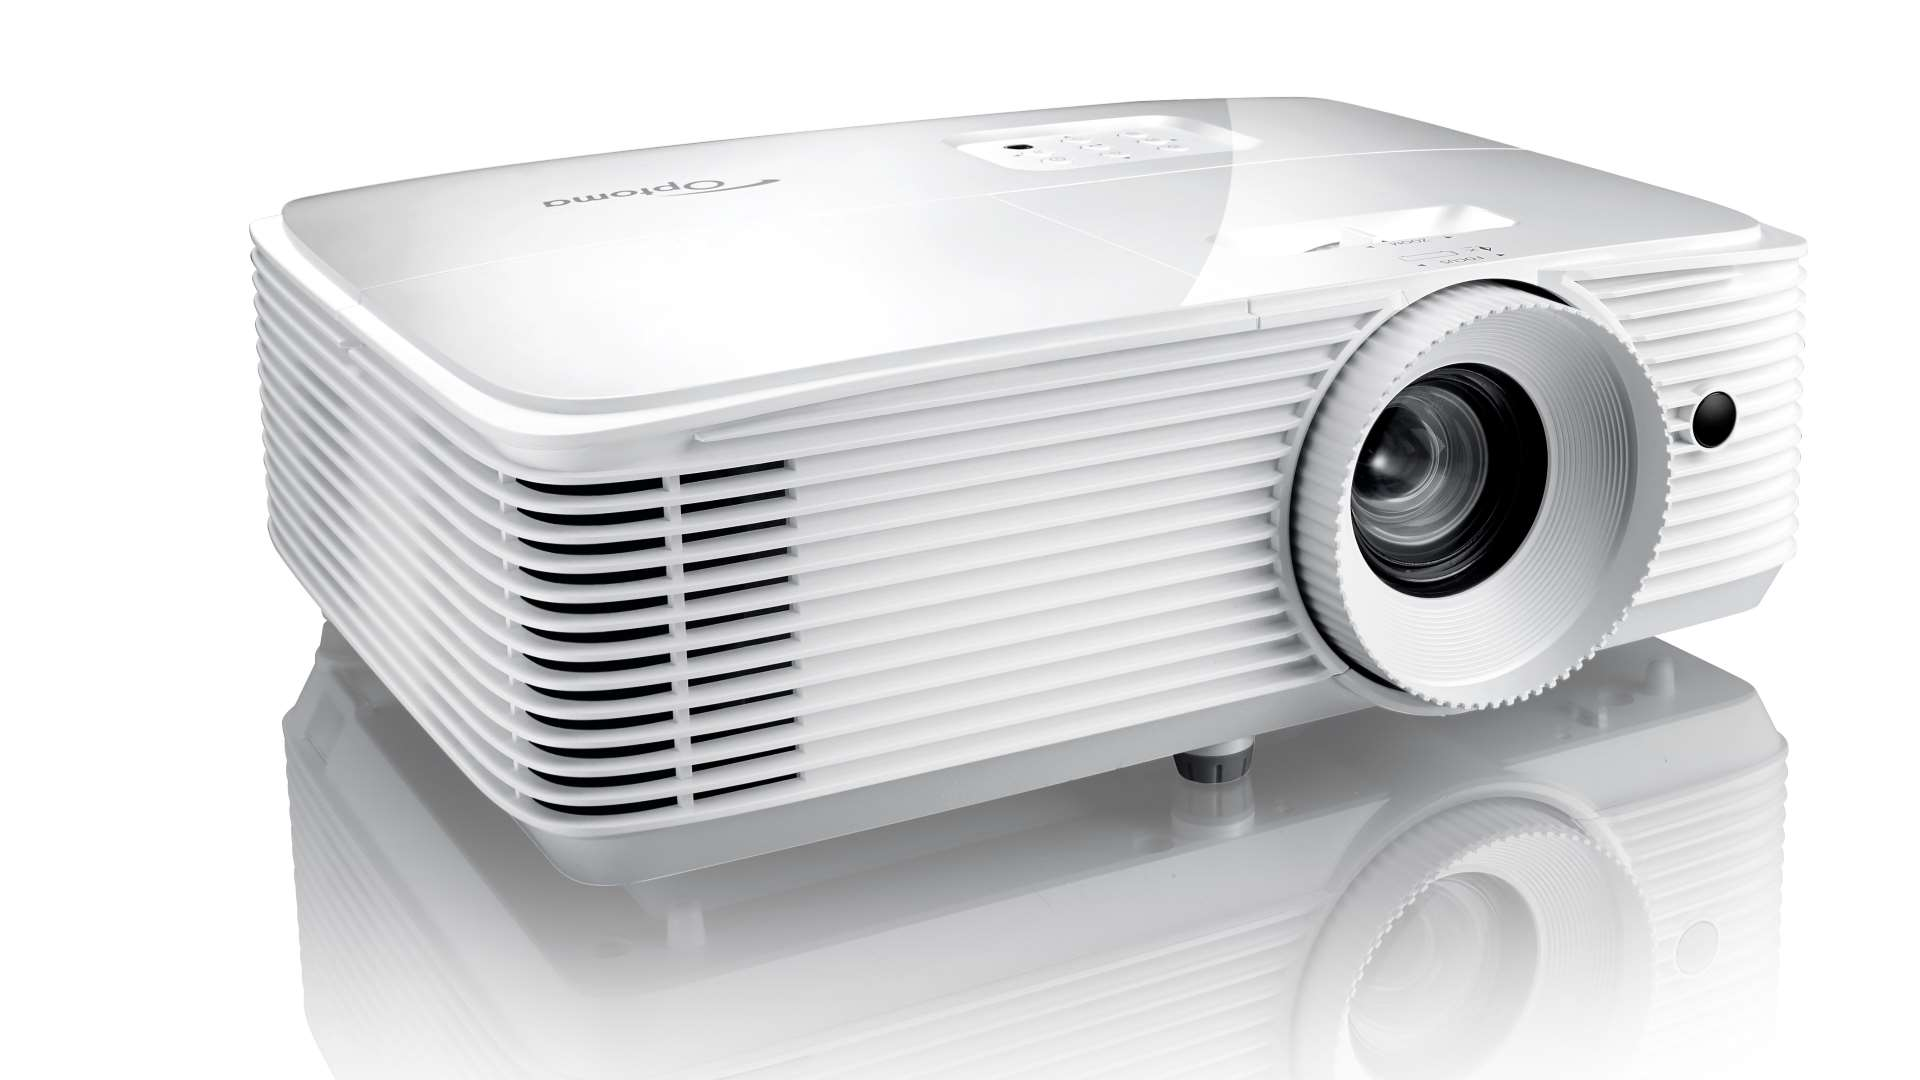 Optoma HD29H review: the best gaming projector thanks to its